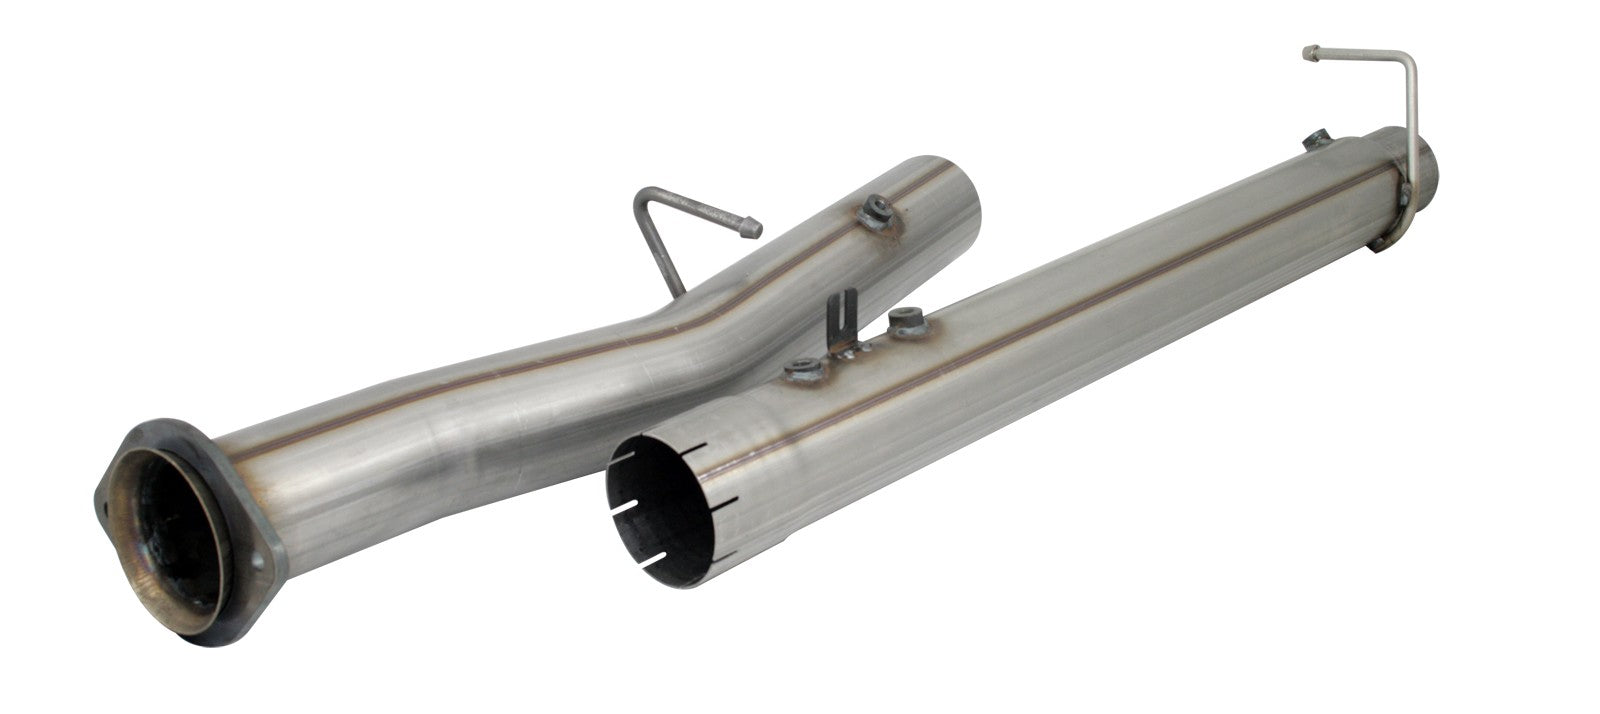 "AFE Power Mach Force-XP 4"" Stainless Steel Race Pipe - Northwest Diesel"